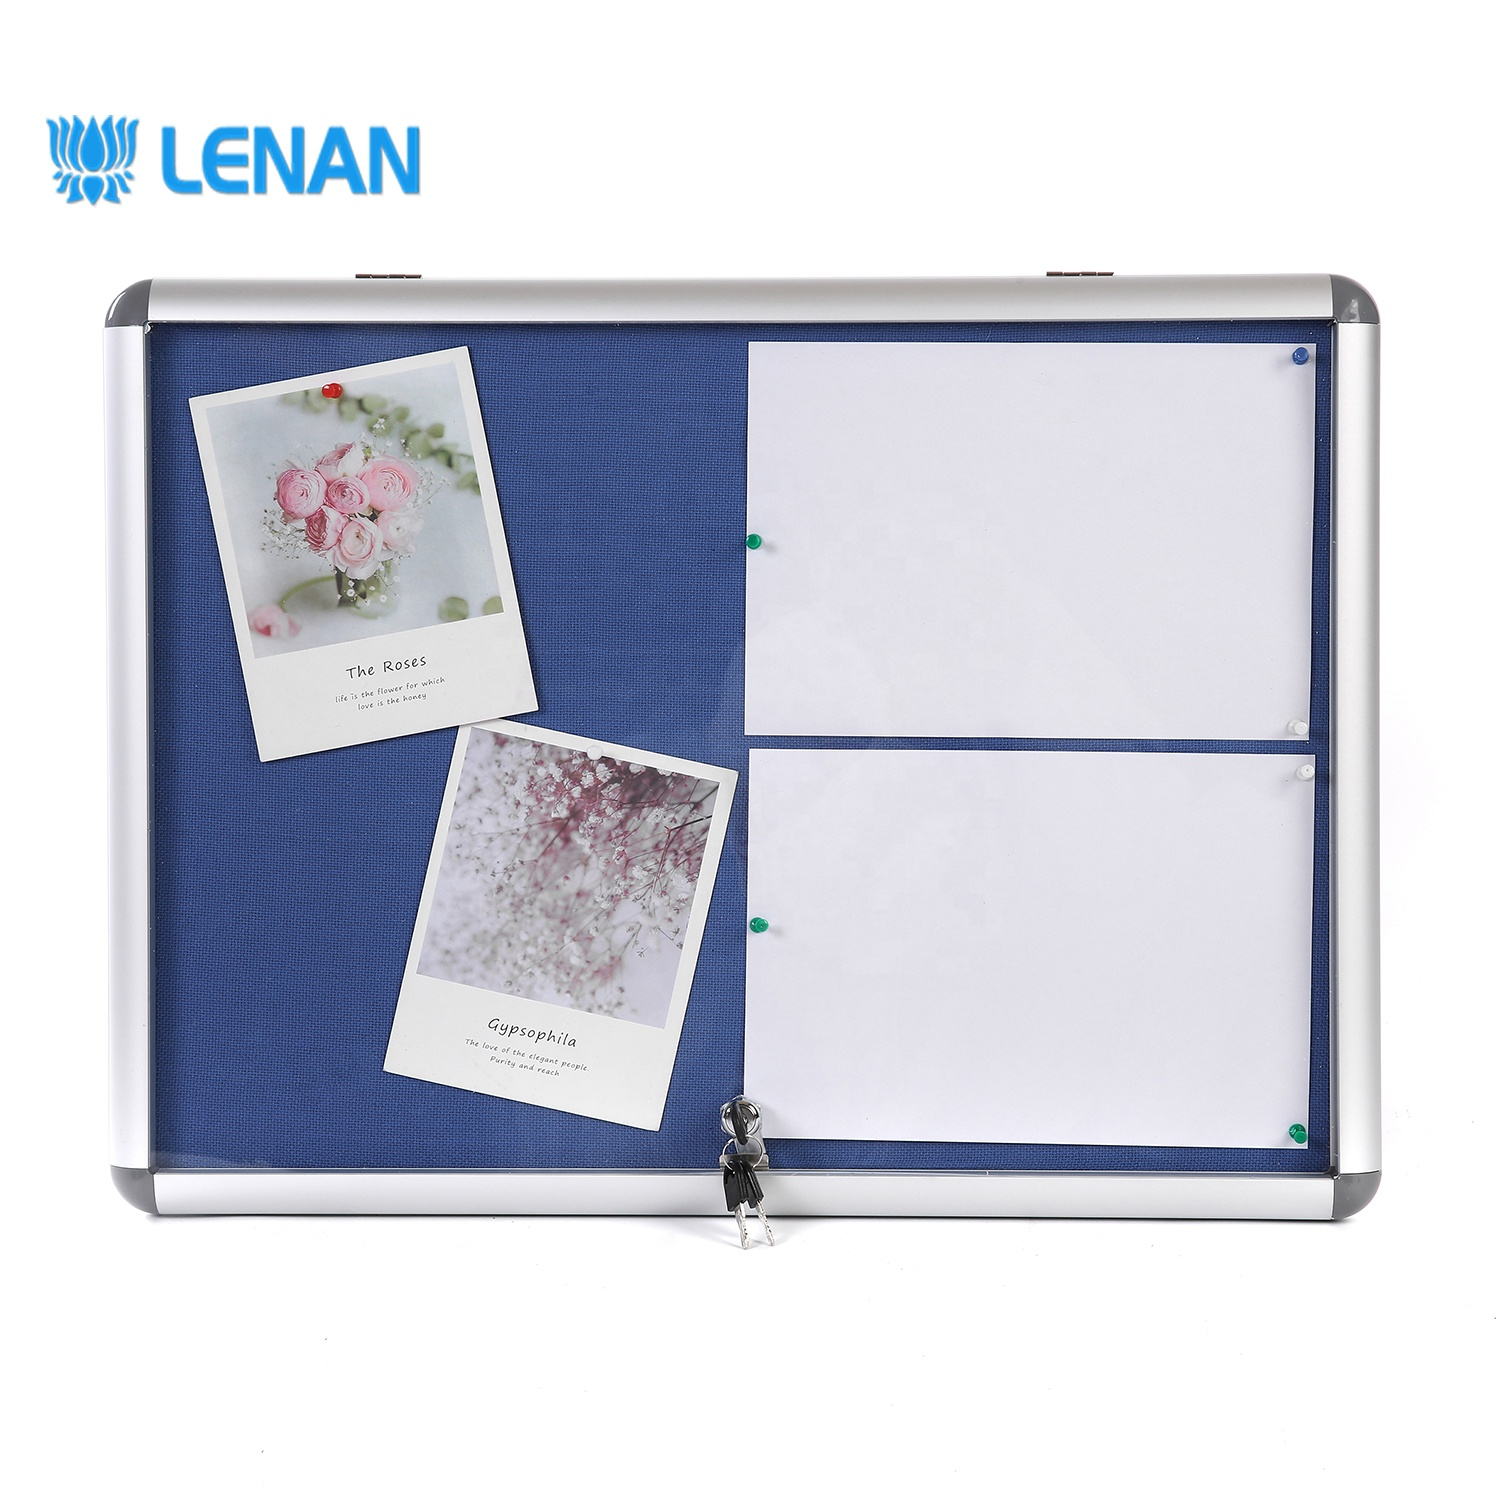 China leverancier school stof pin board message board memo kurk prikbord